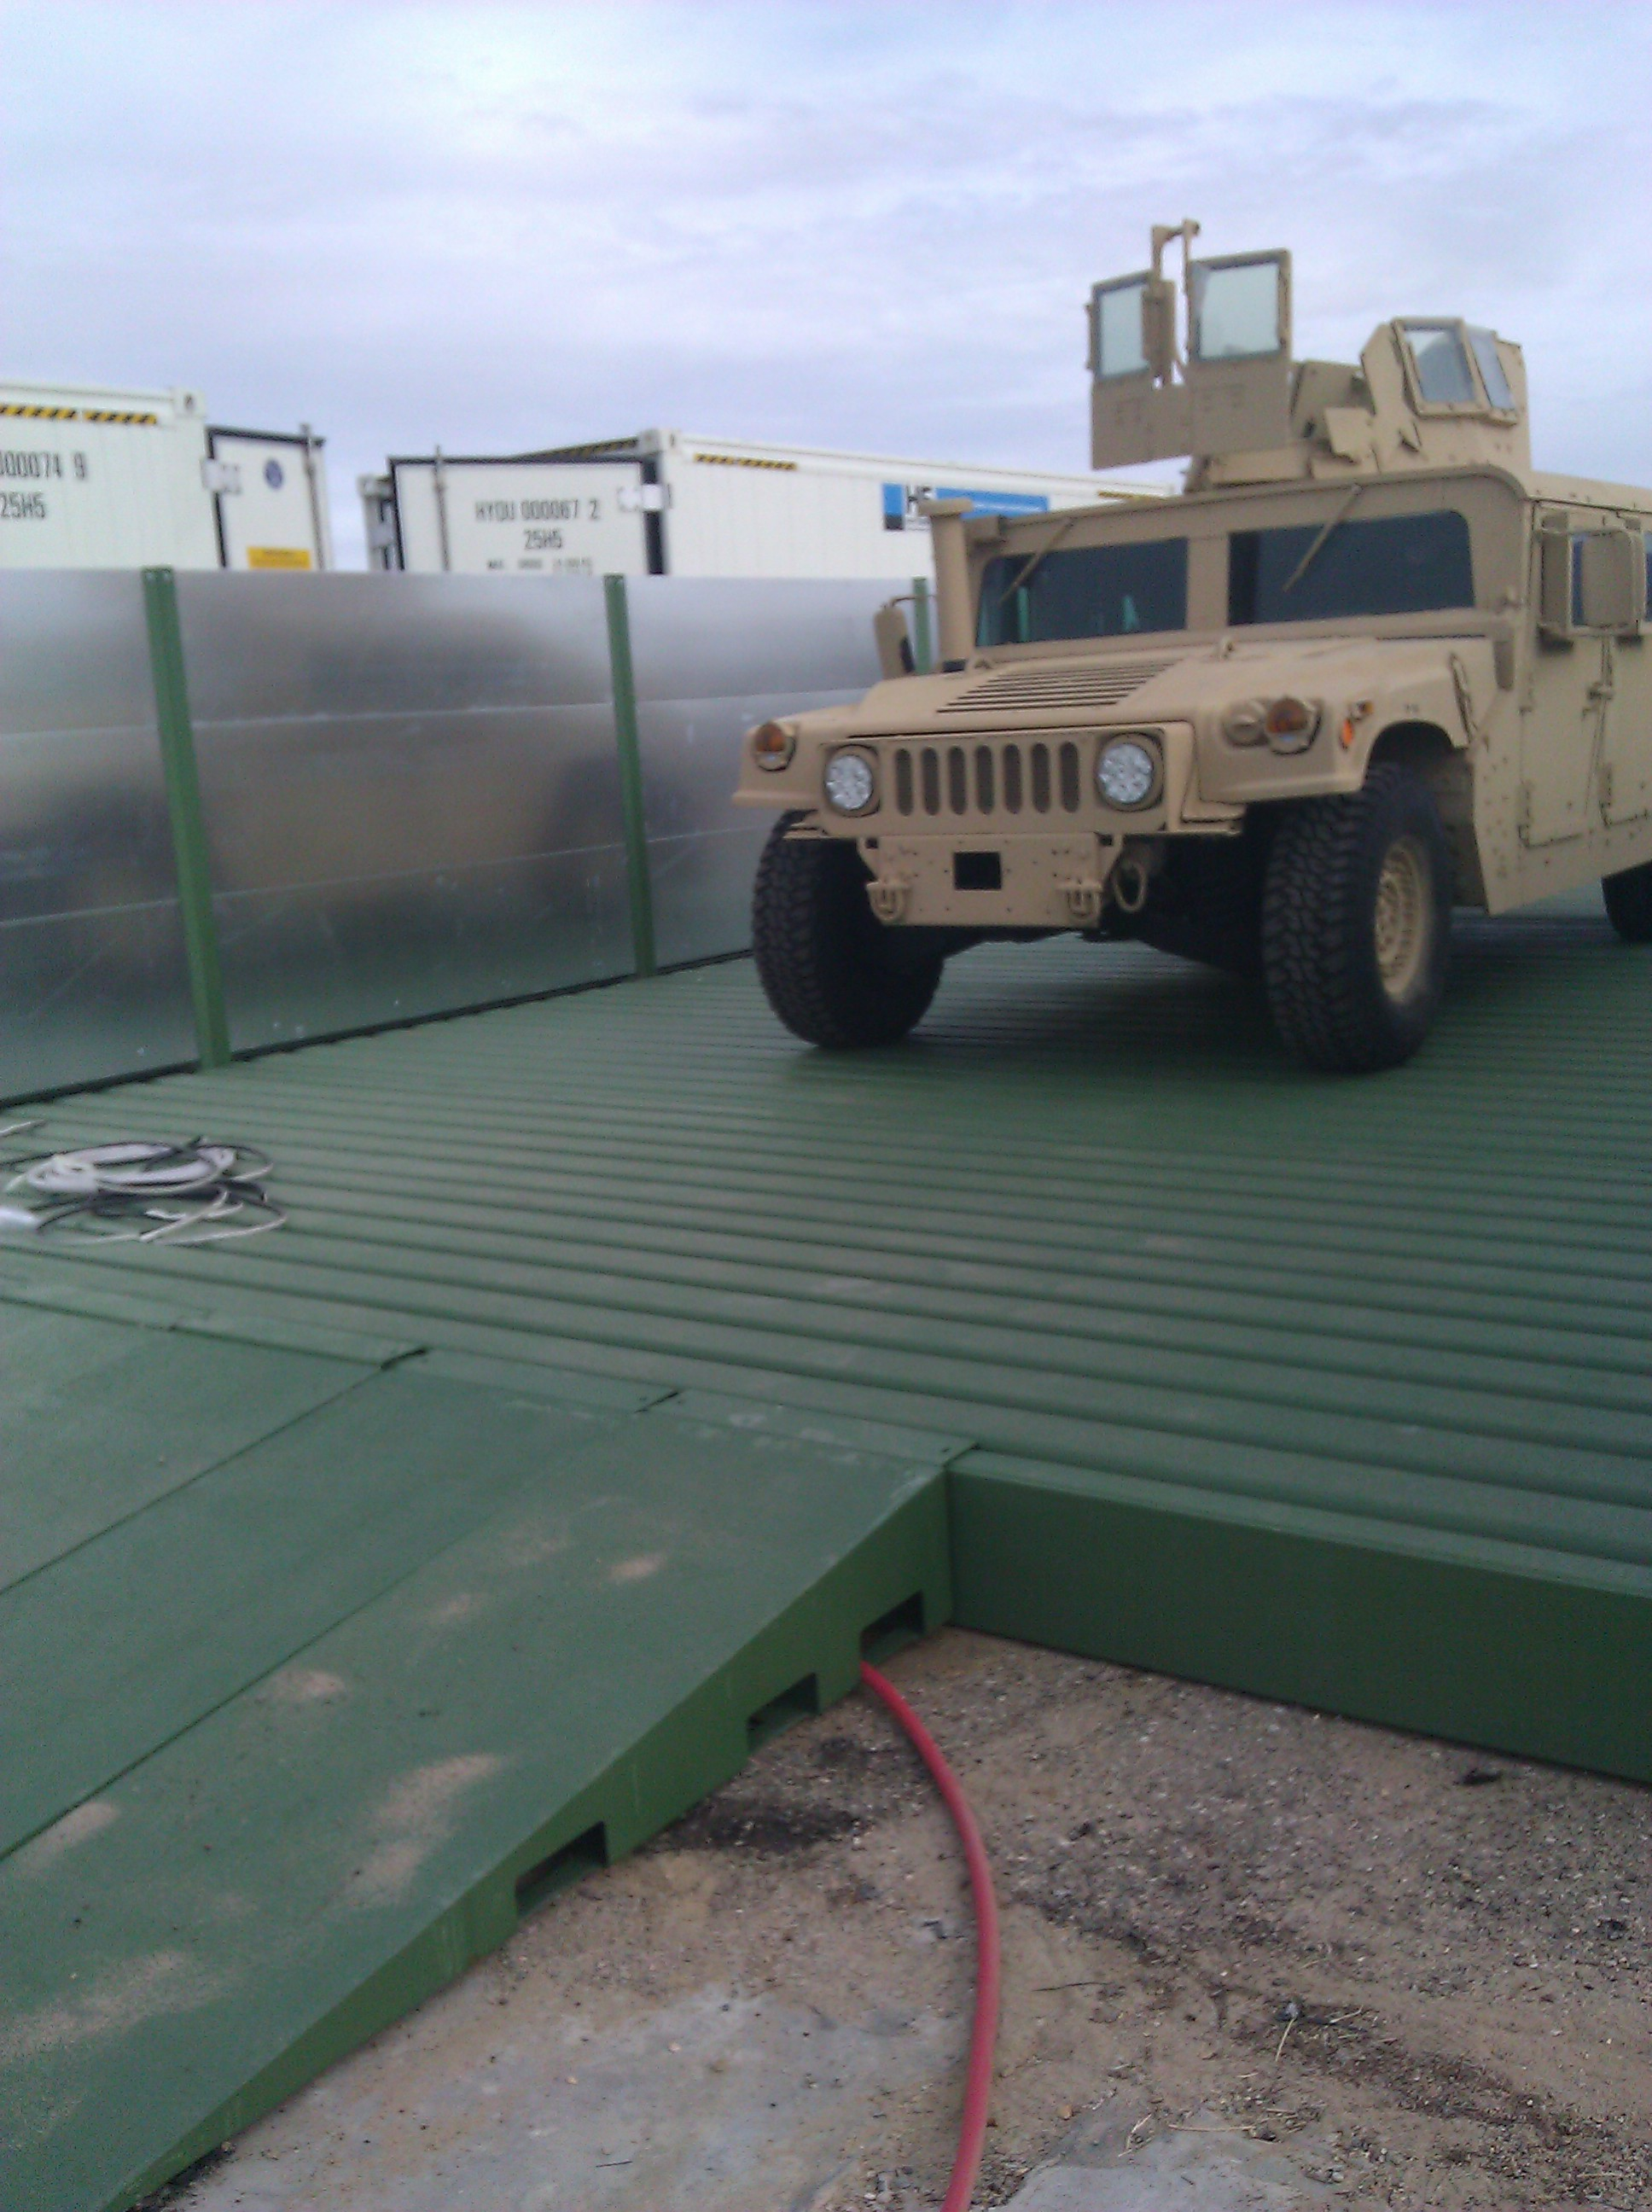 Hydro Engineering Inc Installs Multiple Above Ground Wash Rack Systems For The US Marines